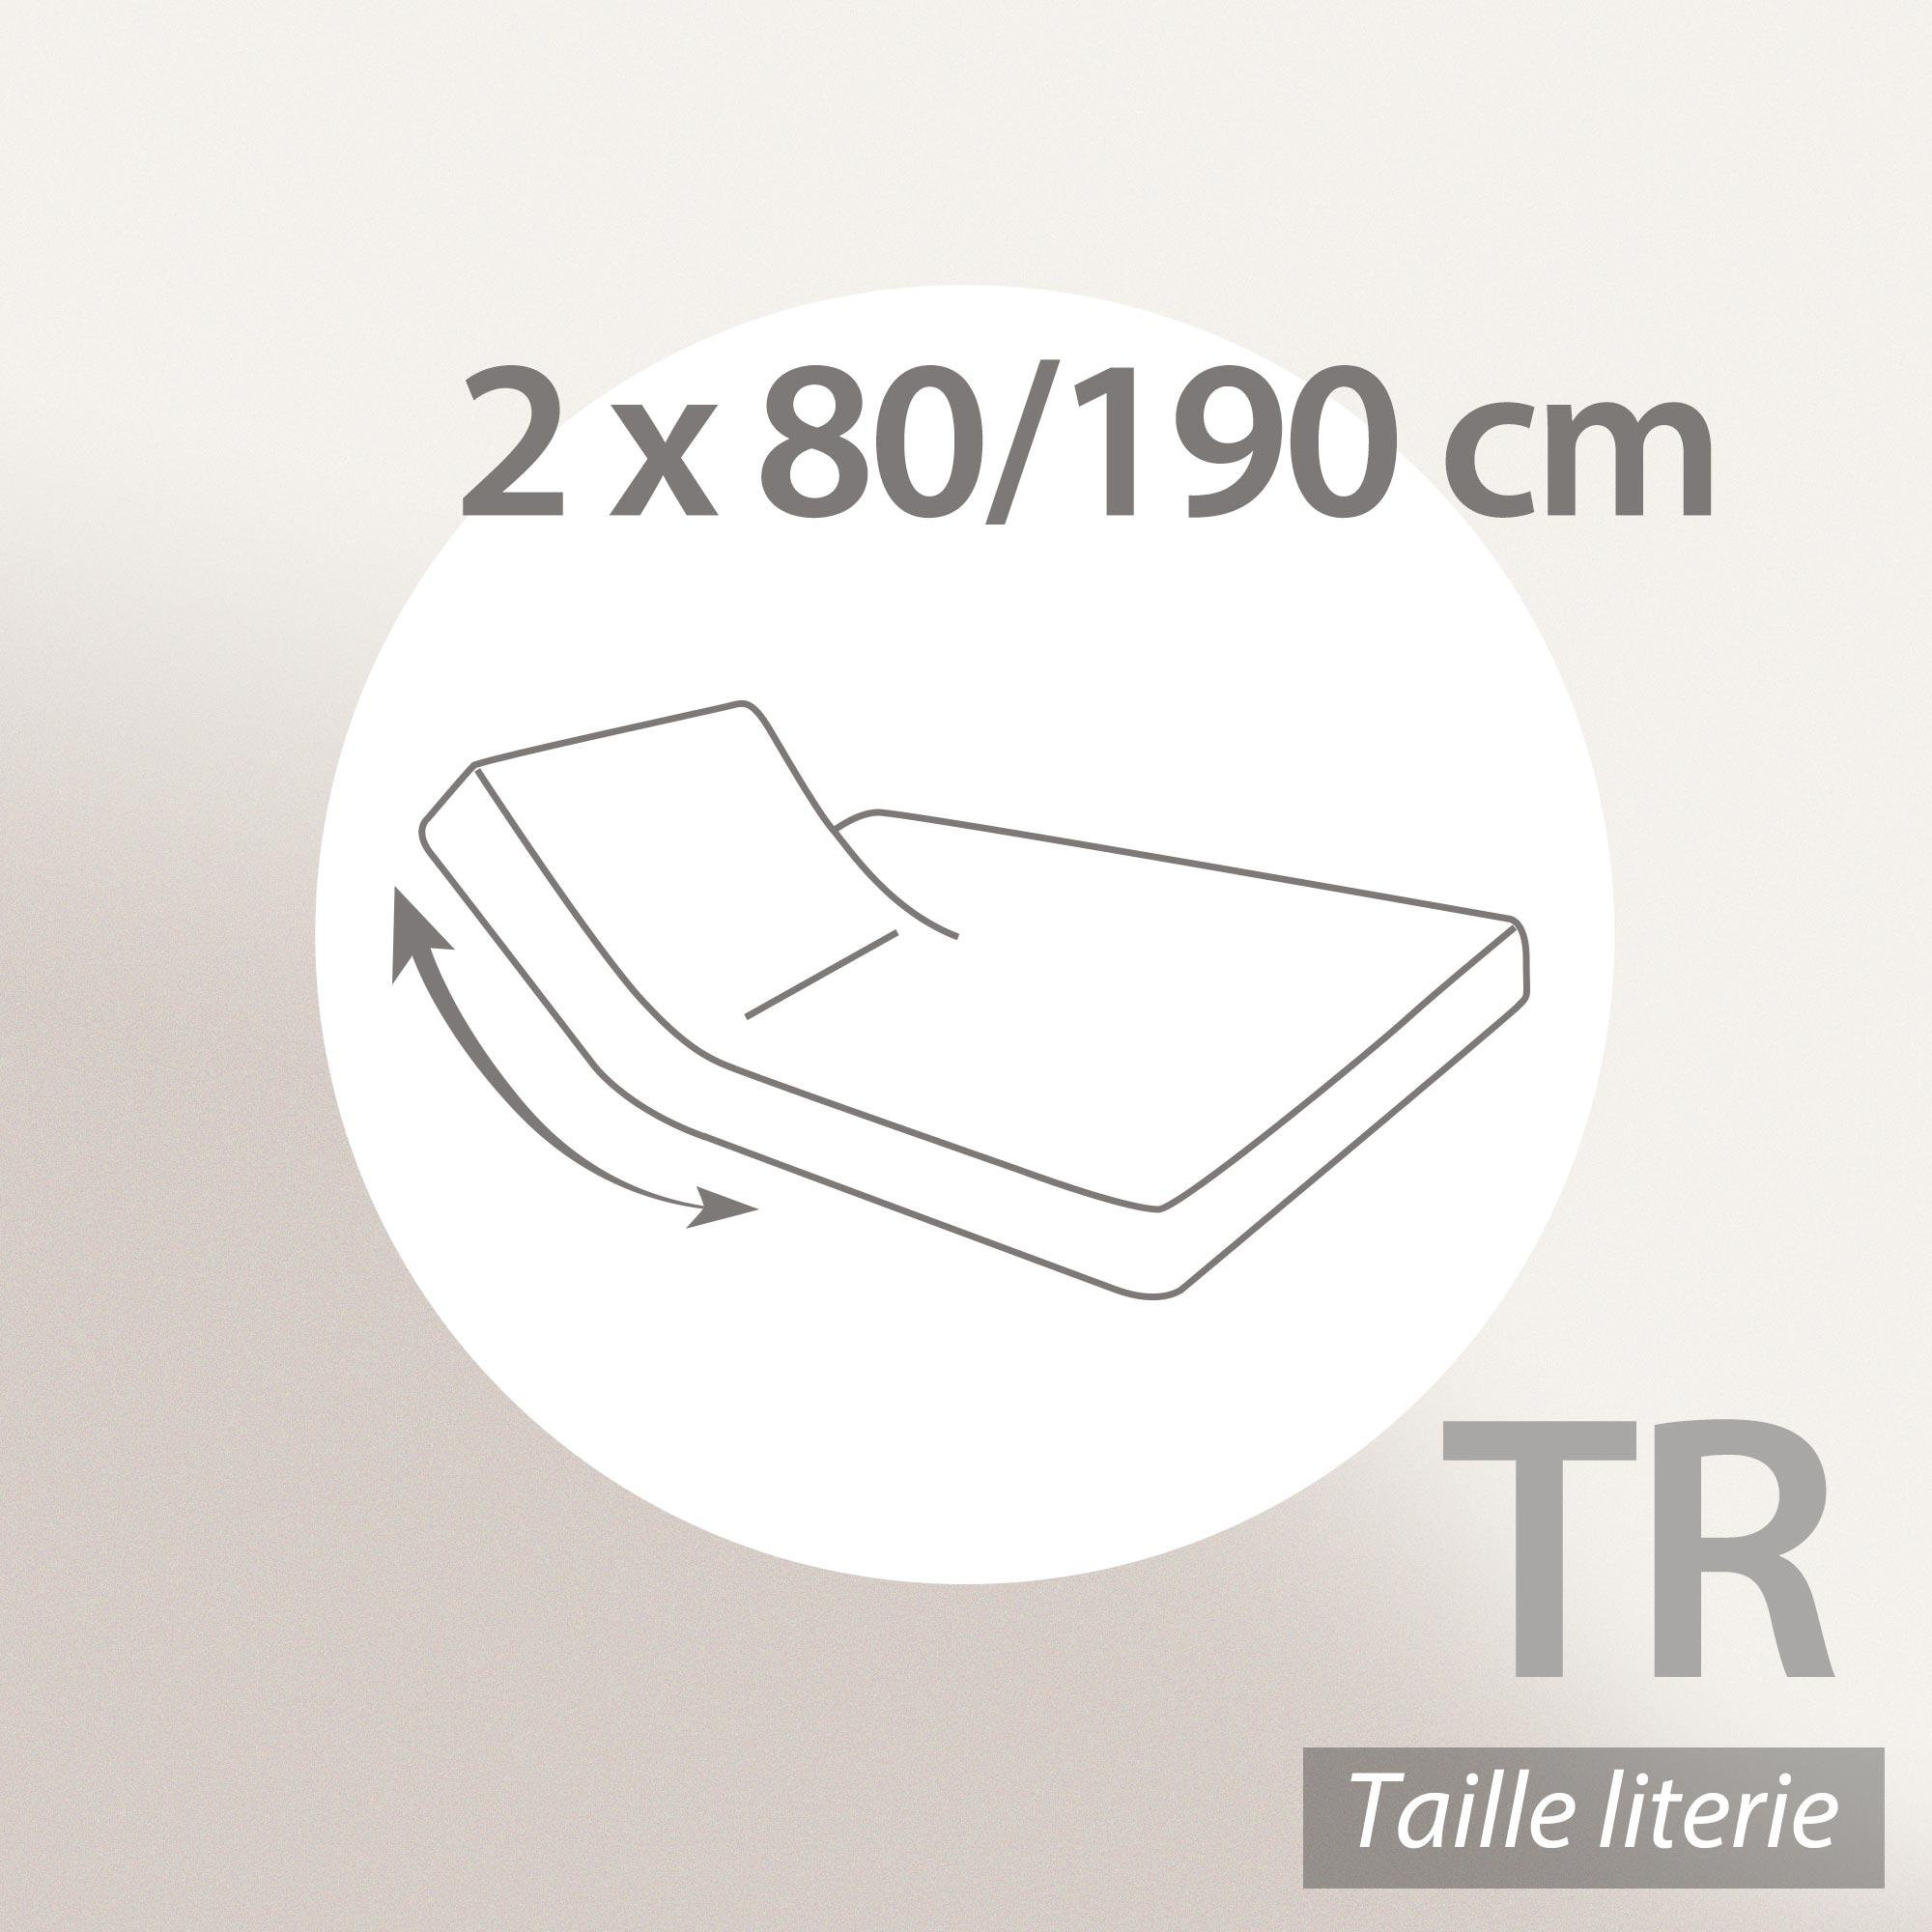 prot ge matelas imperm able 2x80x190 cm lit articul tr bonnet 30cm arnon molleton 100 coton. Black Bedroom Furniture Sets. Home Design Ideas